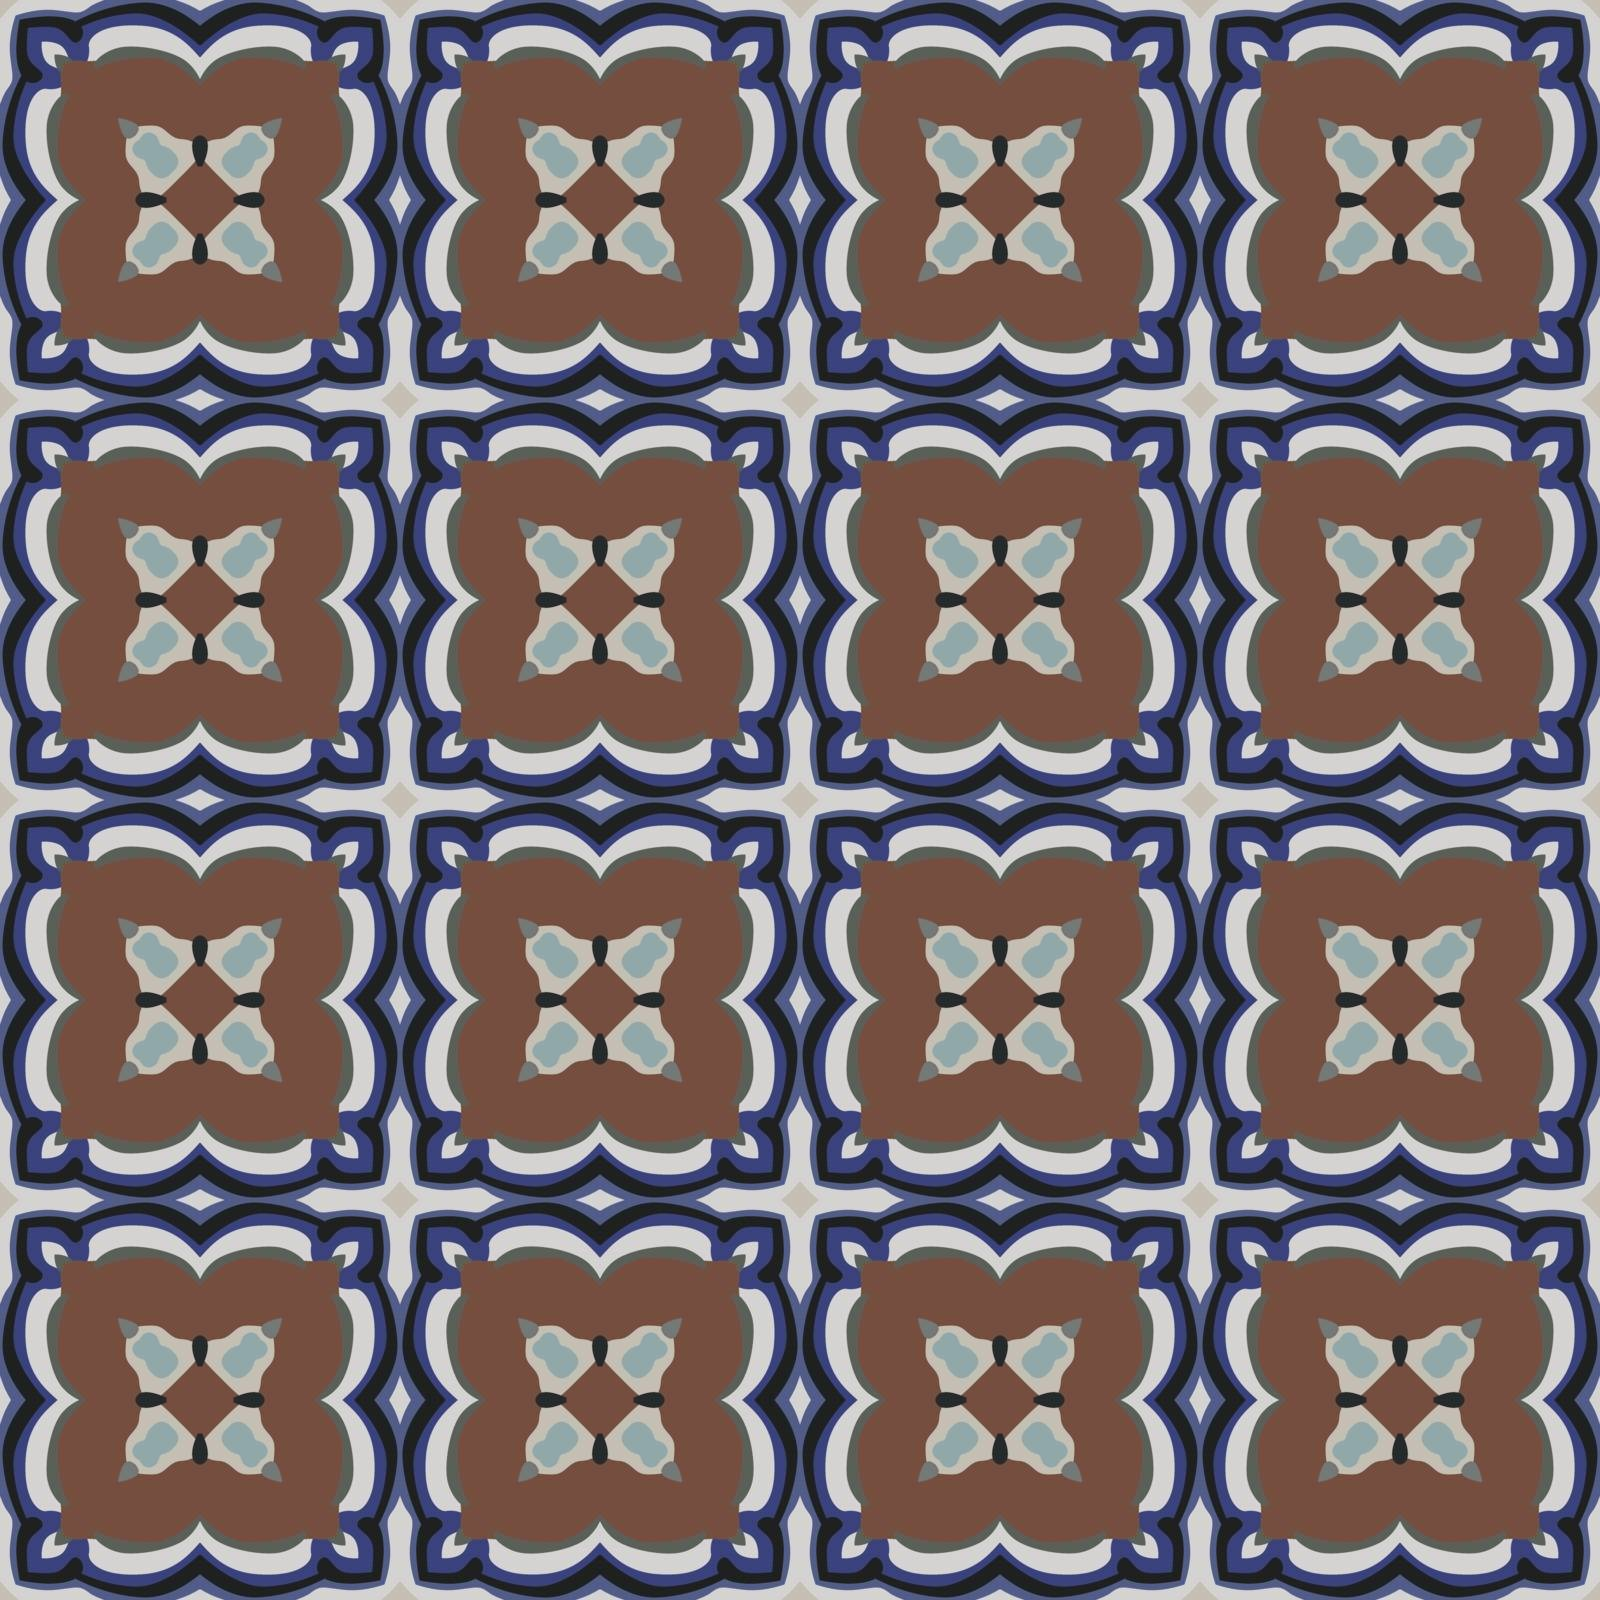 Seamless illustrated pattern made of abstract elements in light gray, brown, black and shades of blue